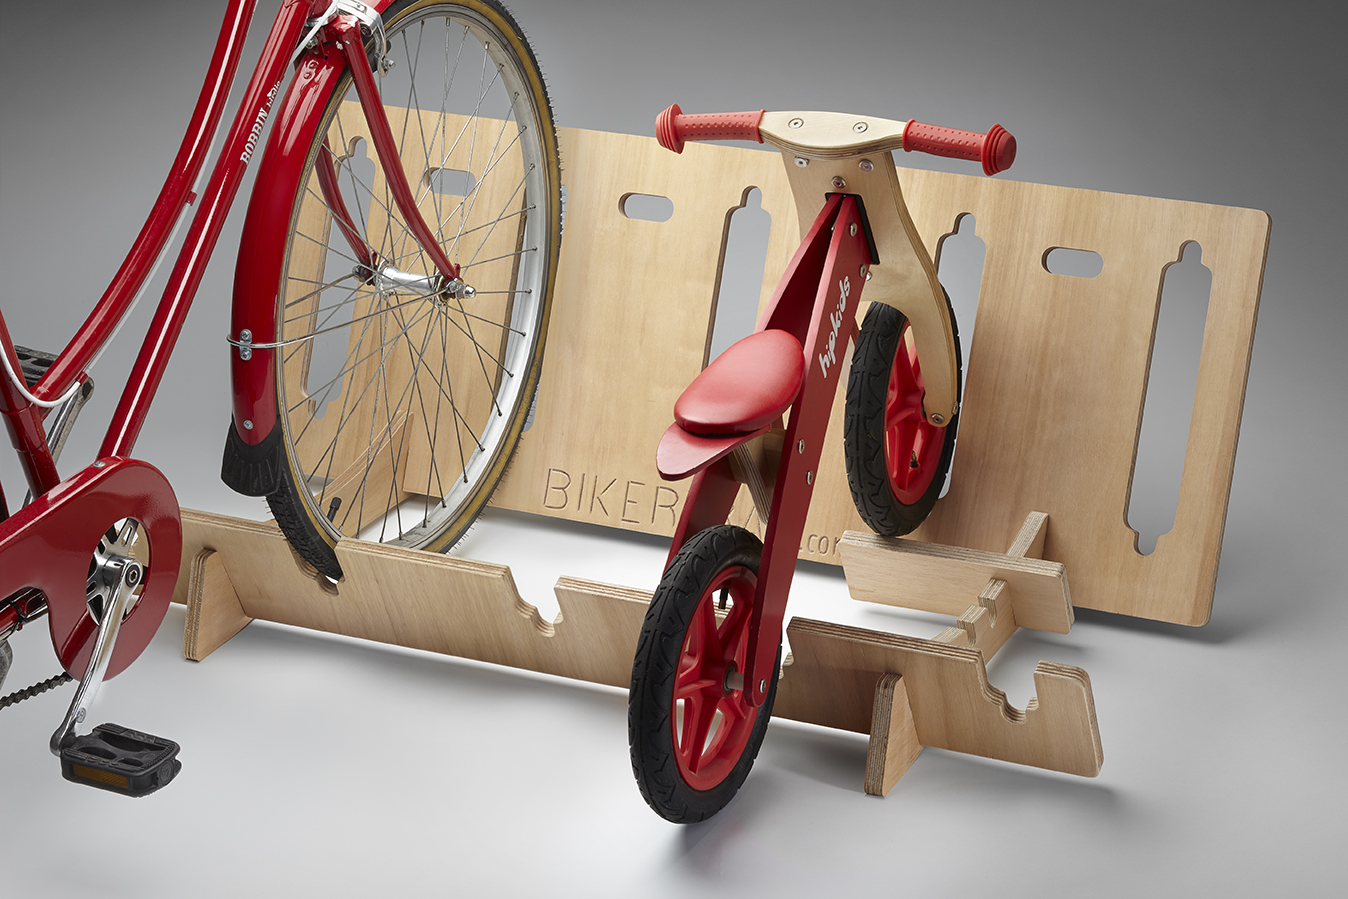 bicycle storage ideas for apartments